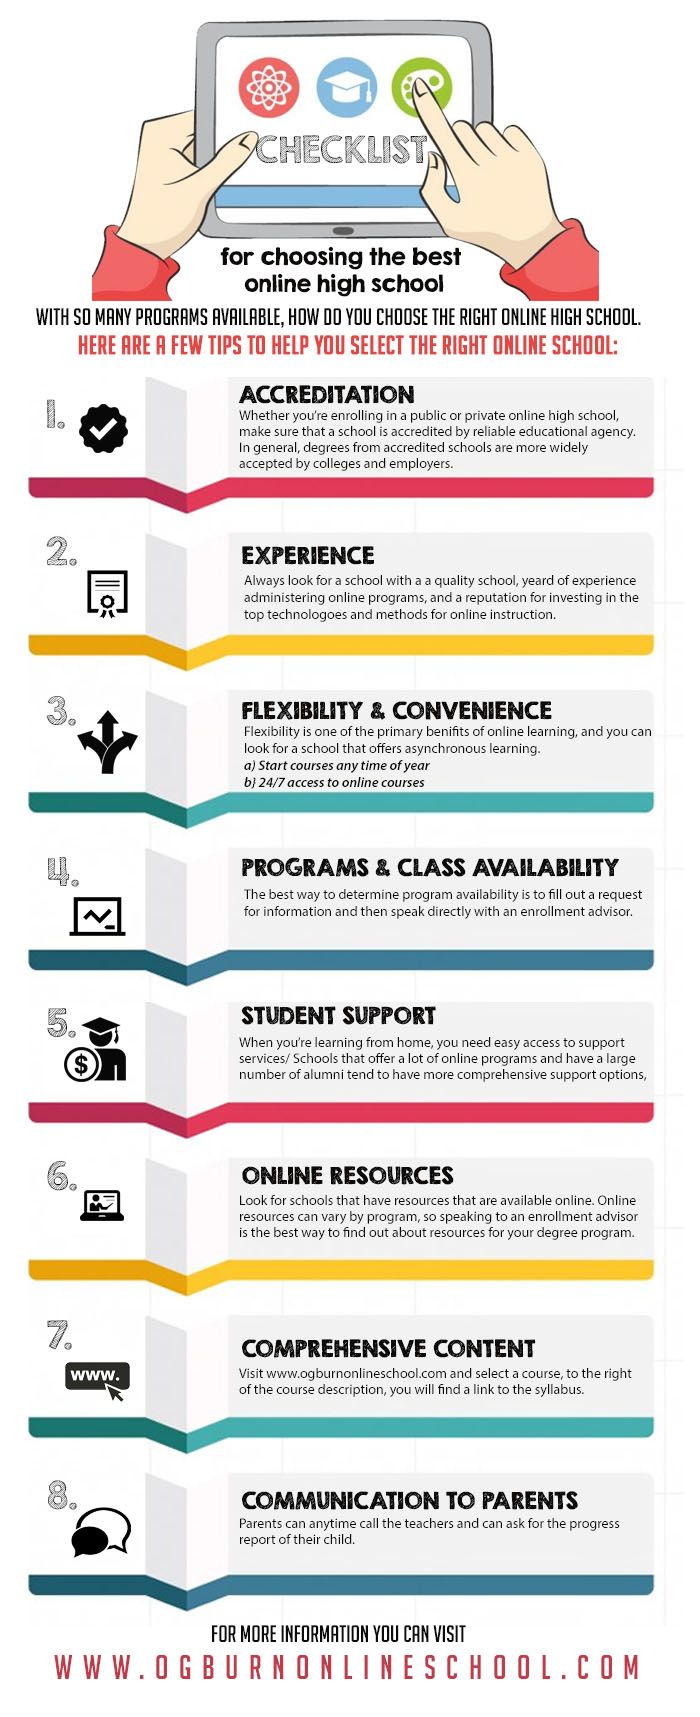 Online High School | Info graphics on Online homeschooling | Online